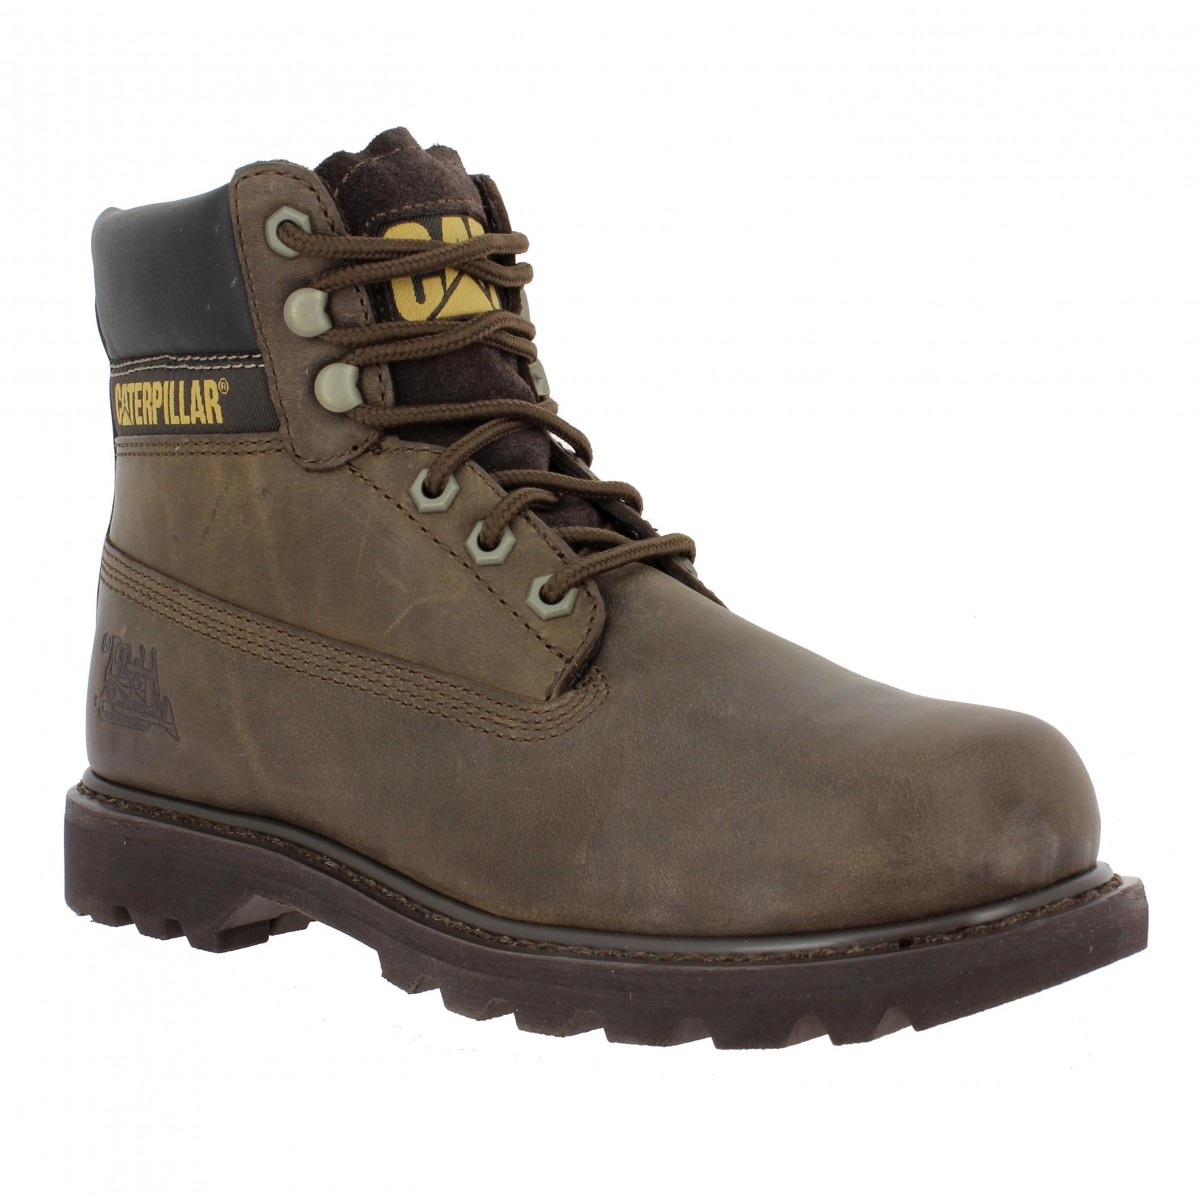 Bottines CATERPILLAR Colorado cuir Homme Chocolat